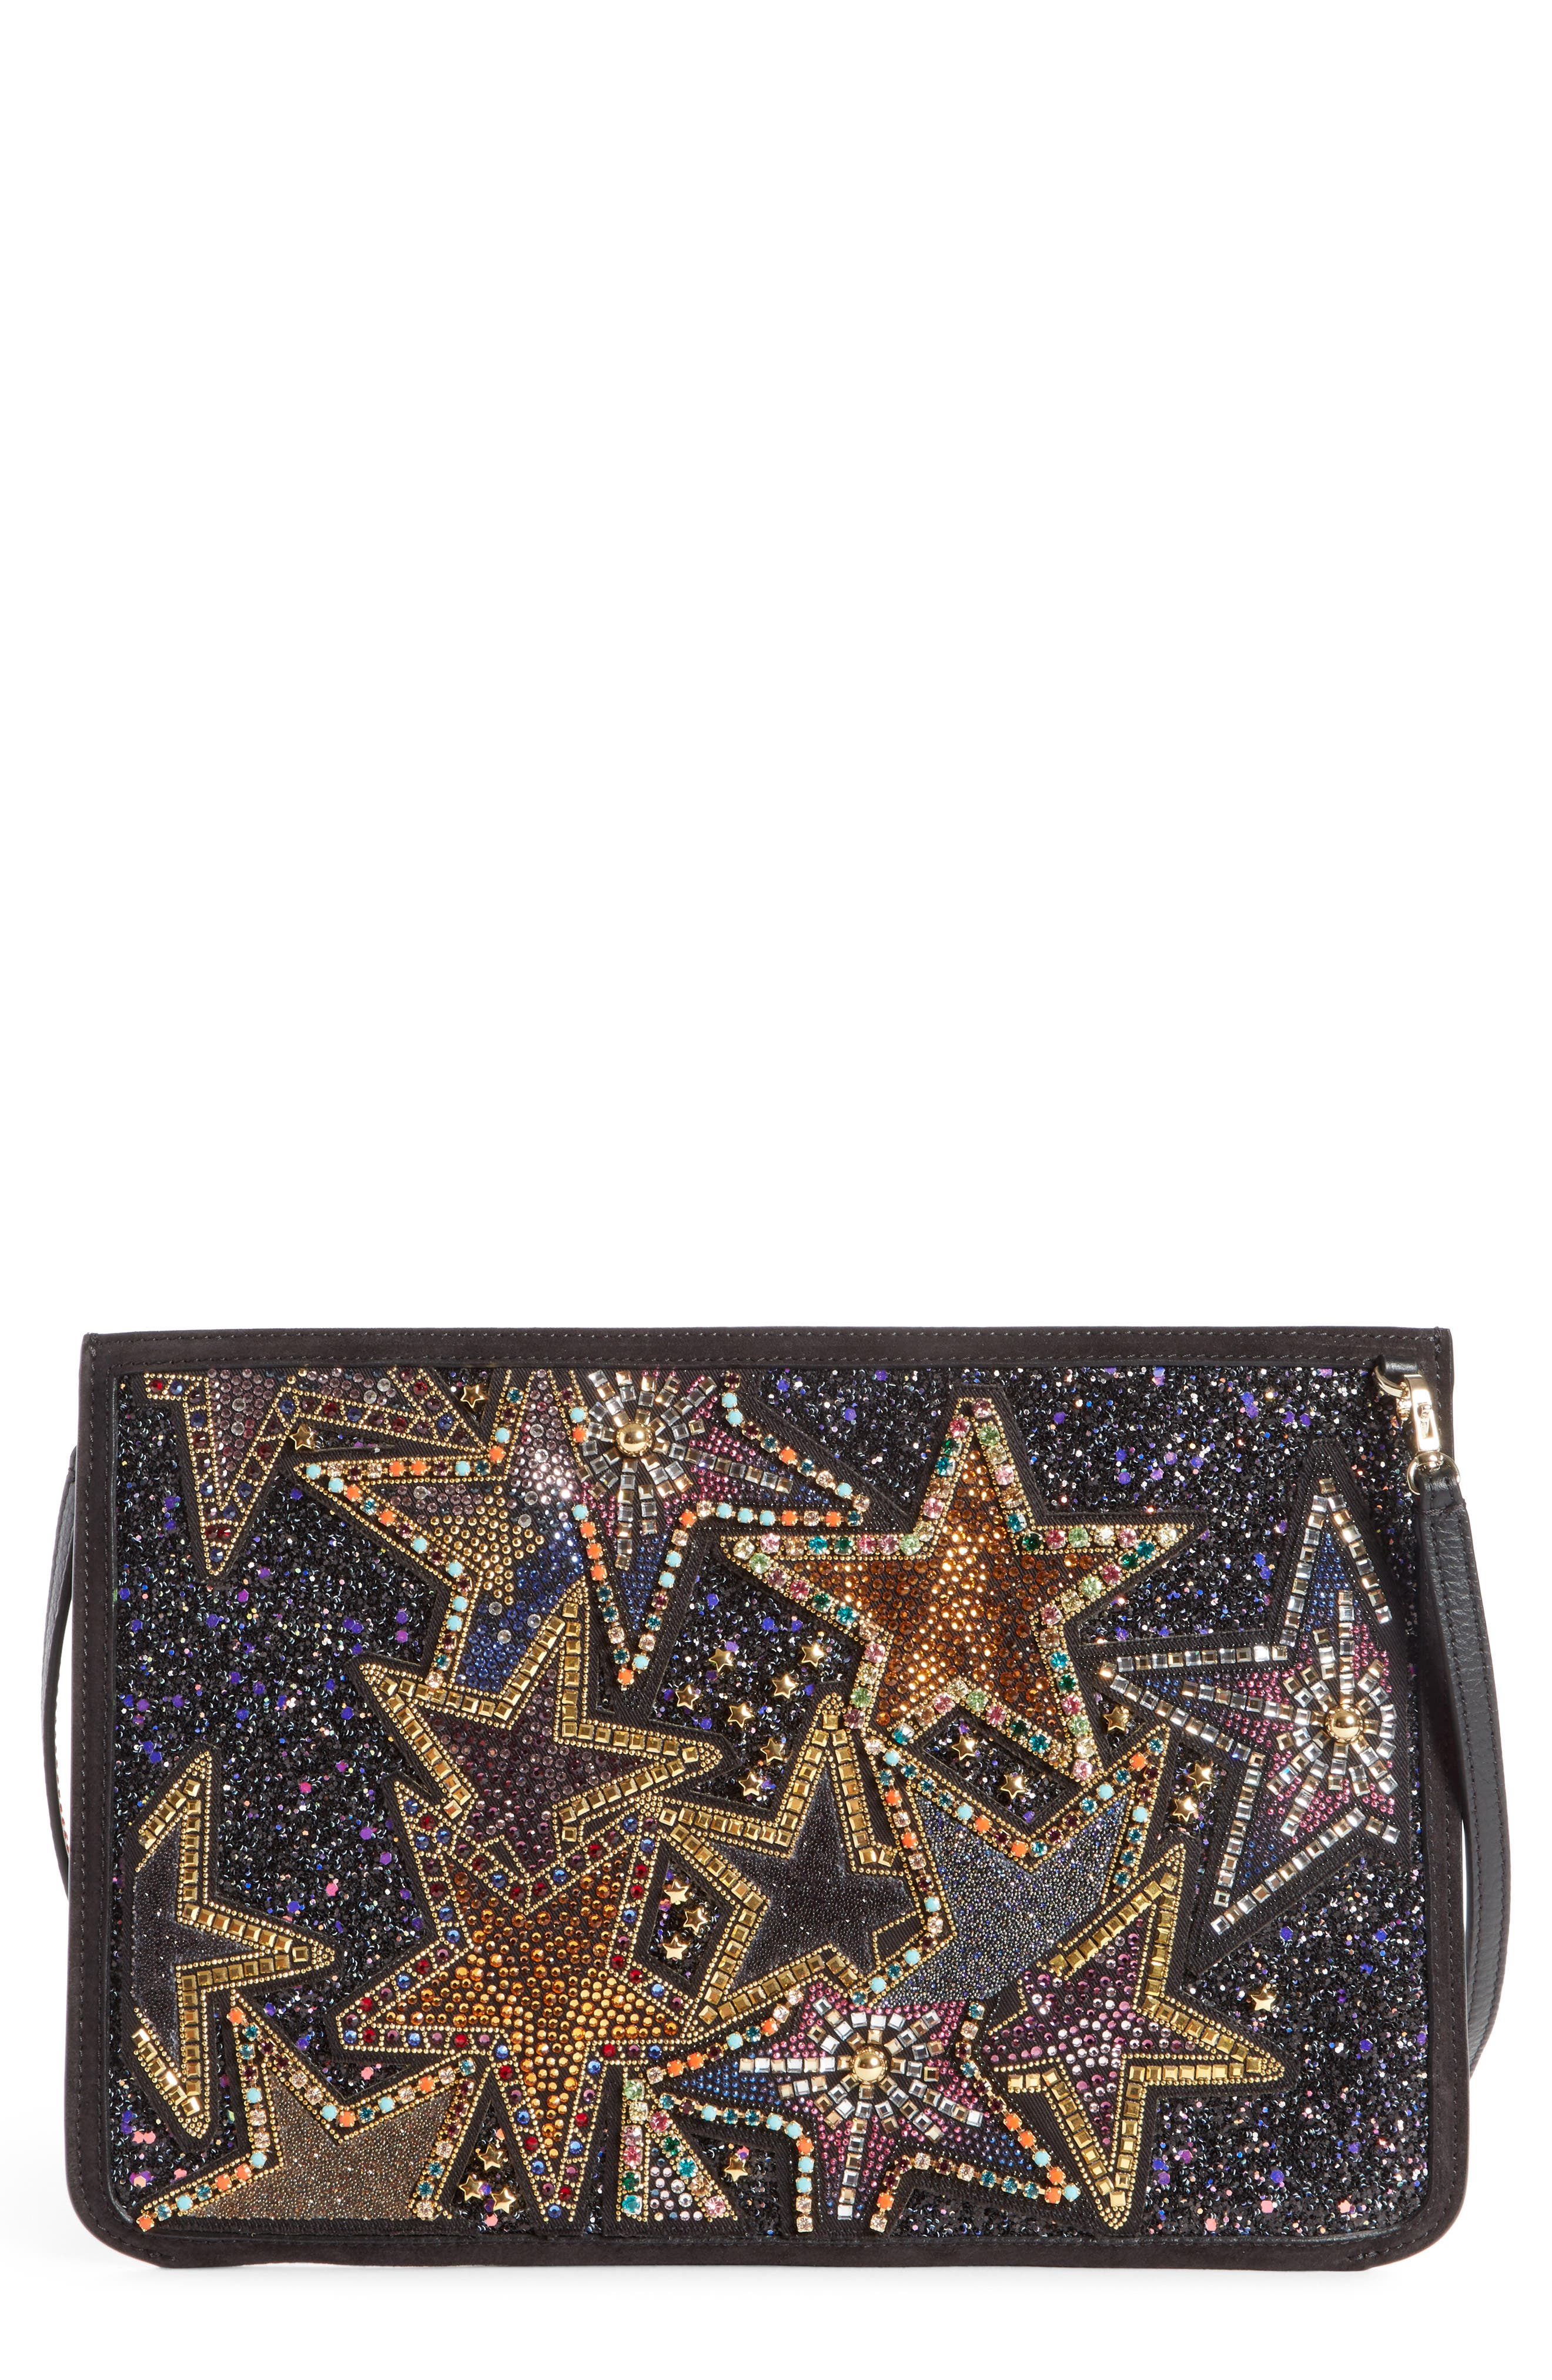 Loubiclutch Glitter Stars Leather Clutch,                             Main thumbnail 1, color,                             Black Multi